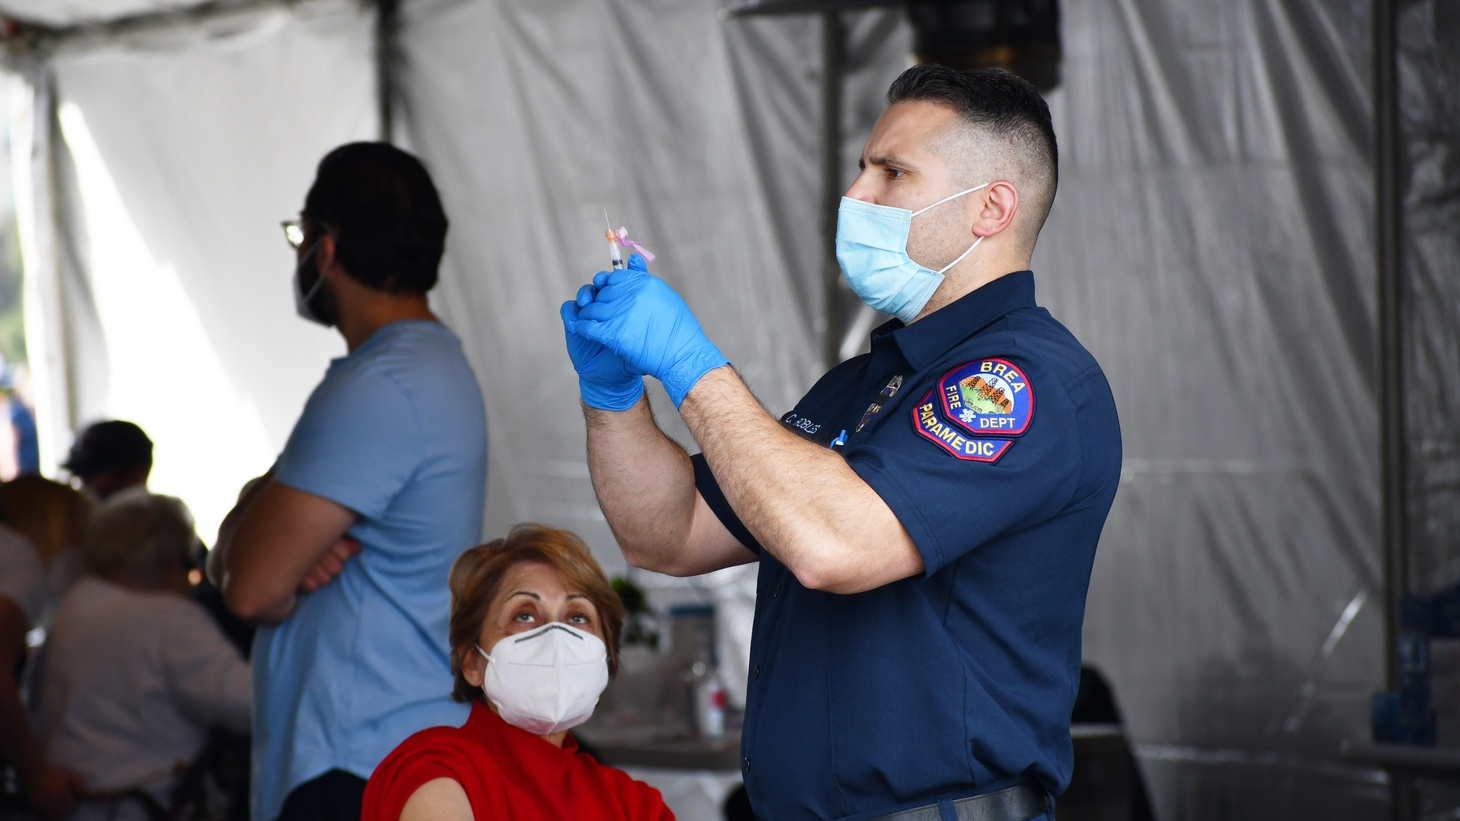 A health worker prepares a COVID-19 vaccine shot at Disneyland, which recently became a vaccination site. January 13, 2021.